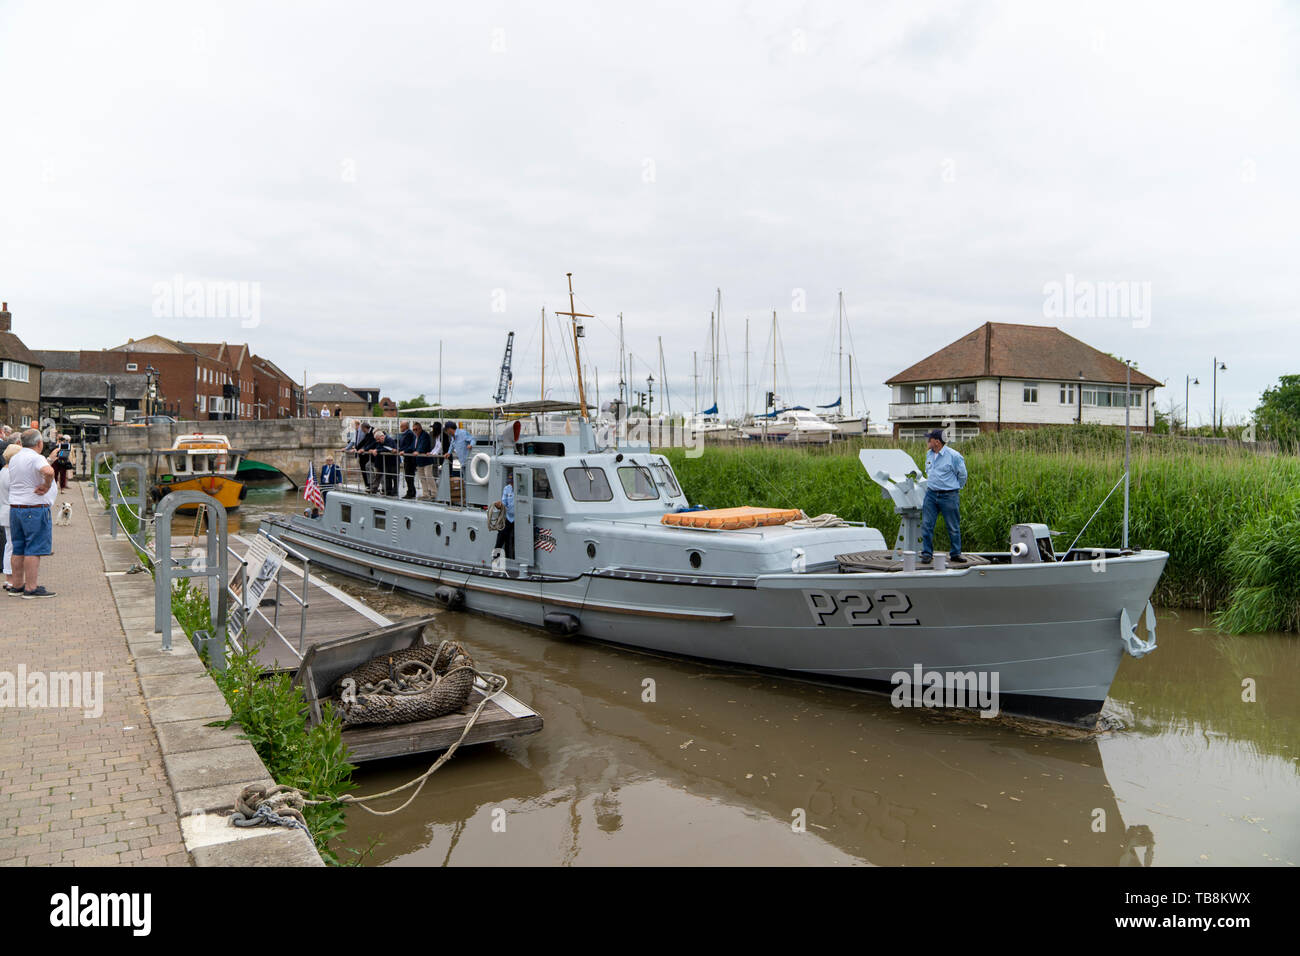 P22, a US built Rhine River Patrol boat from the 1950's, casting off from the quay side at Sandwich for France where it will take part in the 75th anniversary of D-Day. American patrol boat leaving morring in small river with people on the quay watching and waving. Stock Photo